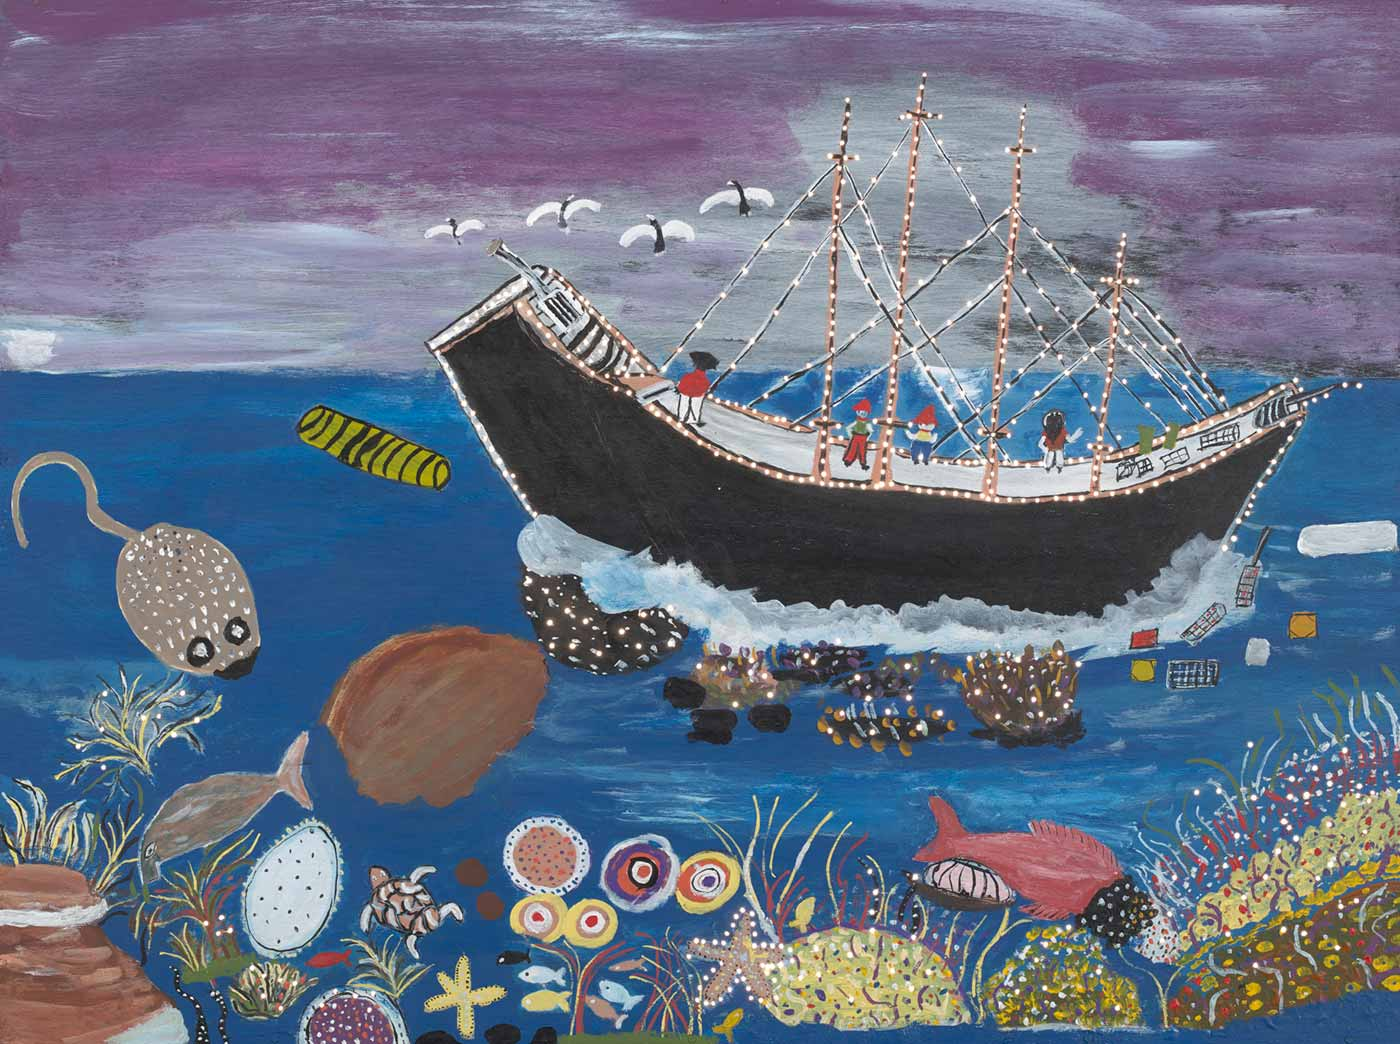 Painting featuring a ship with a captain and crew. It is sailing on a sea with sea creatures and other life below.